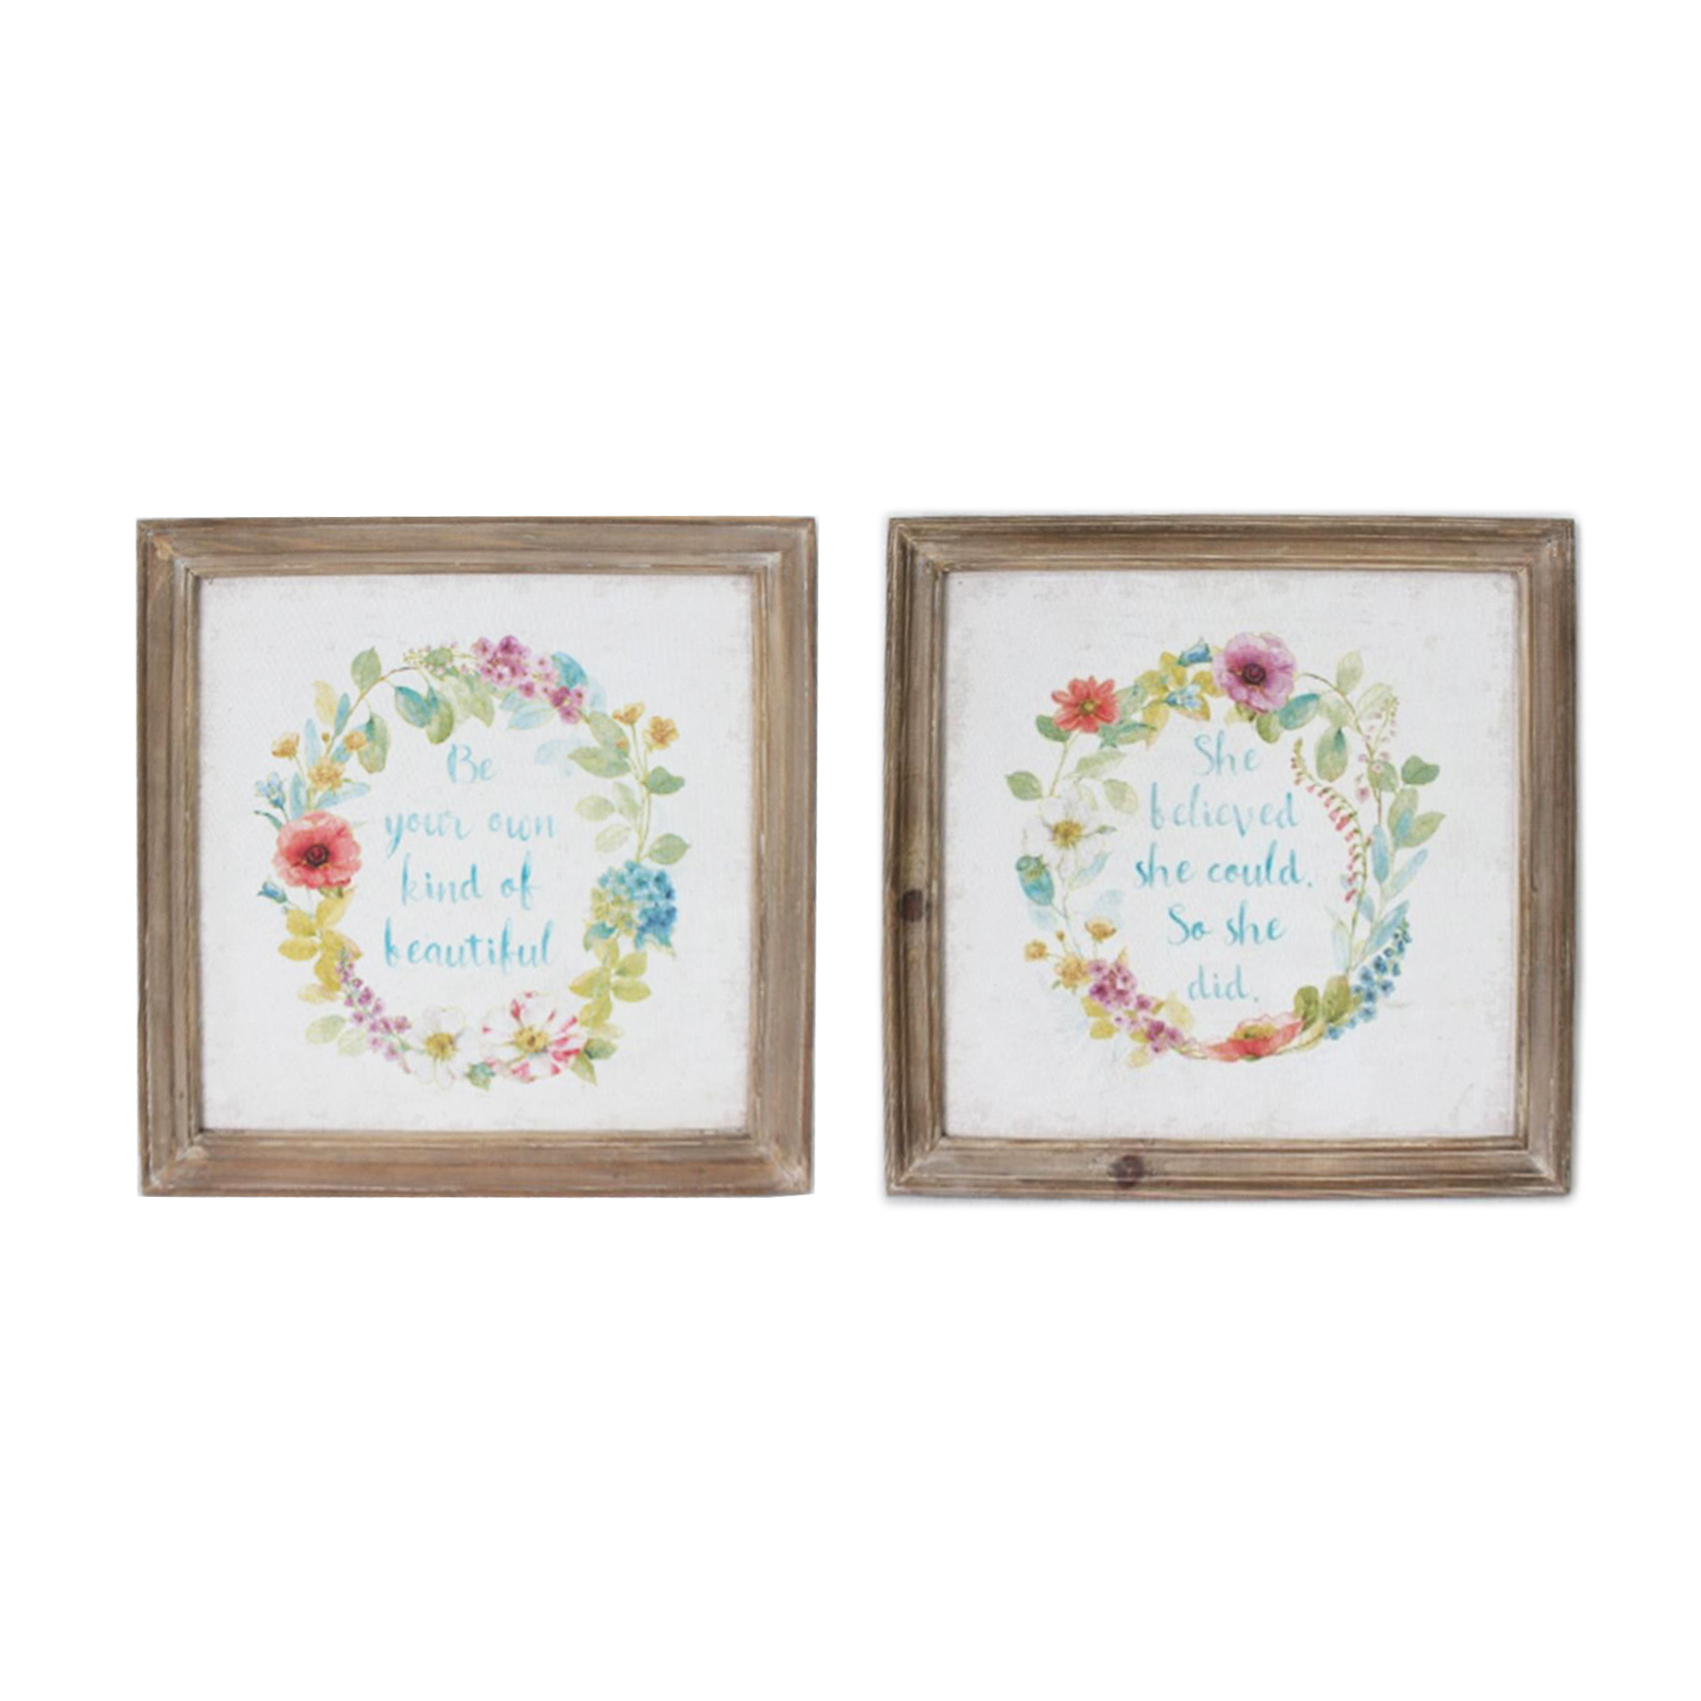 2X Shabby Chic Wooden Framed Floral Wreath Canvas Print Picture Wall Throughout Popular Floral Wreath Wood Framed Wall Decor (View 3 of 20)